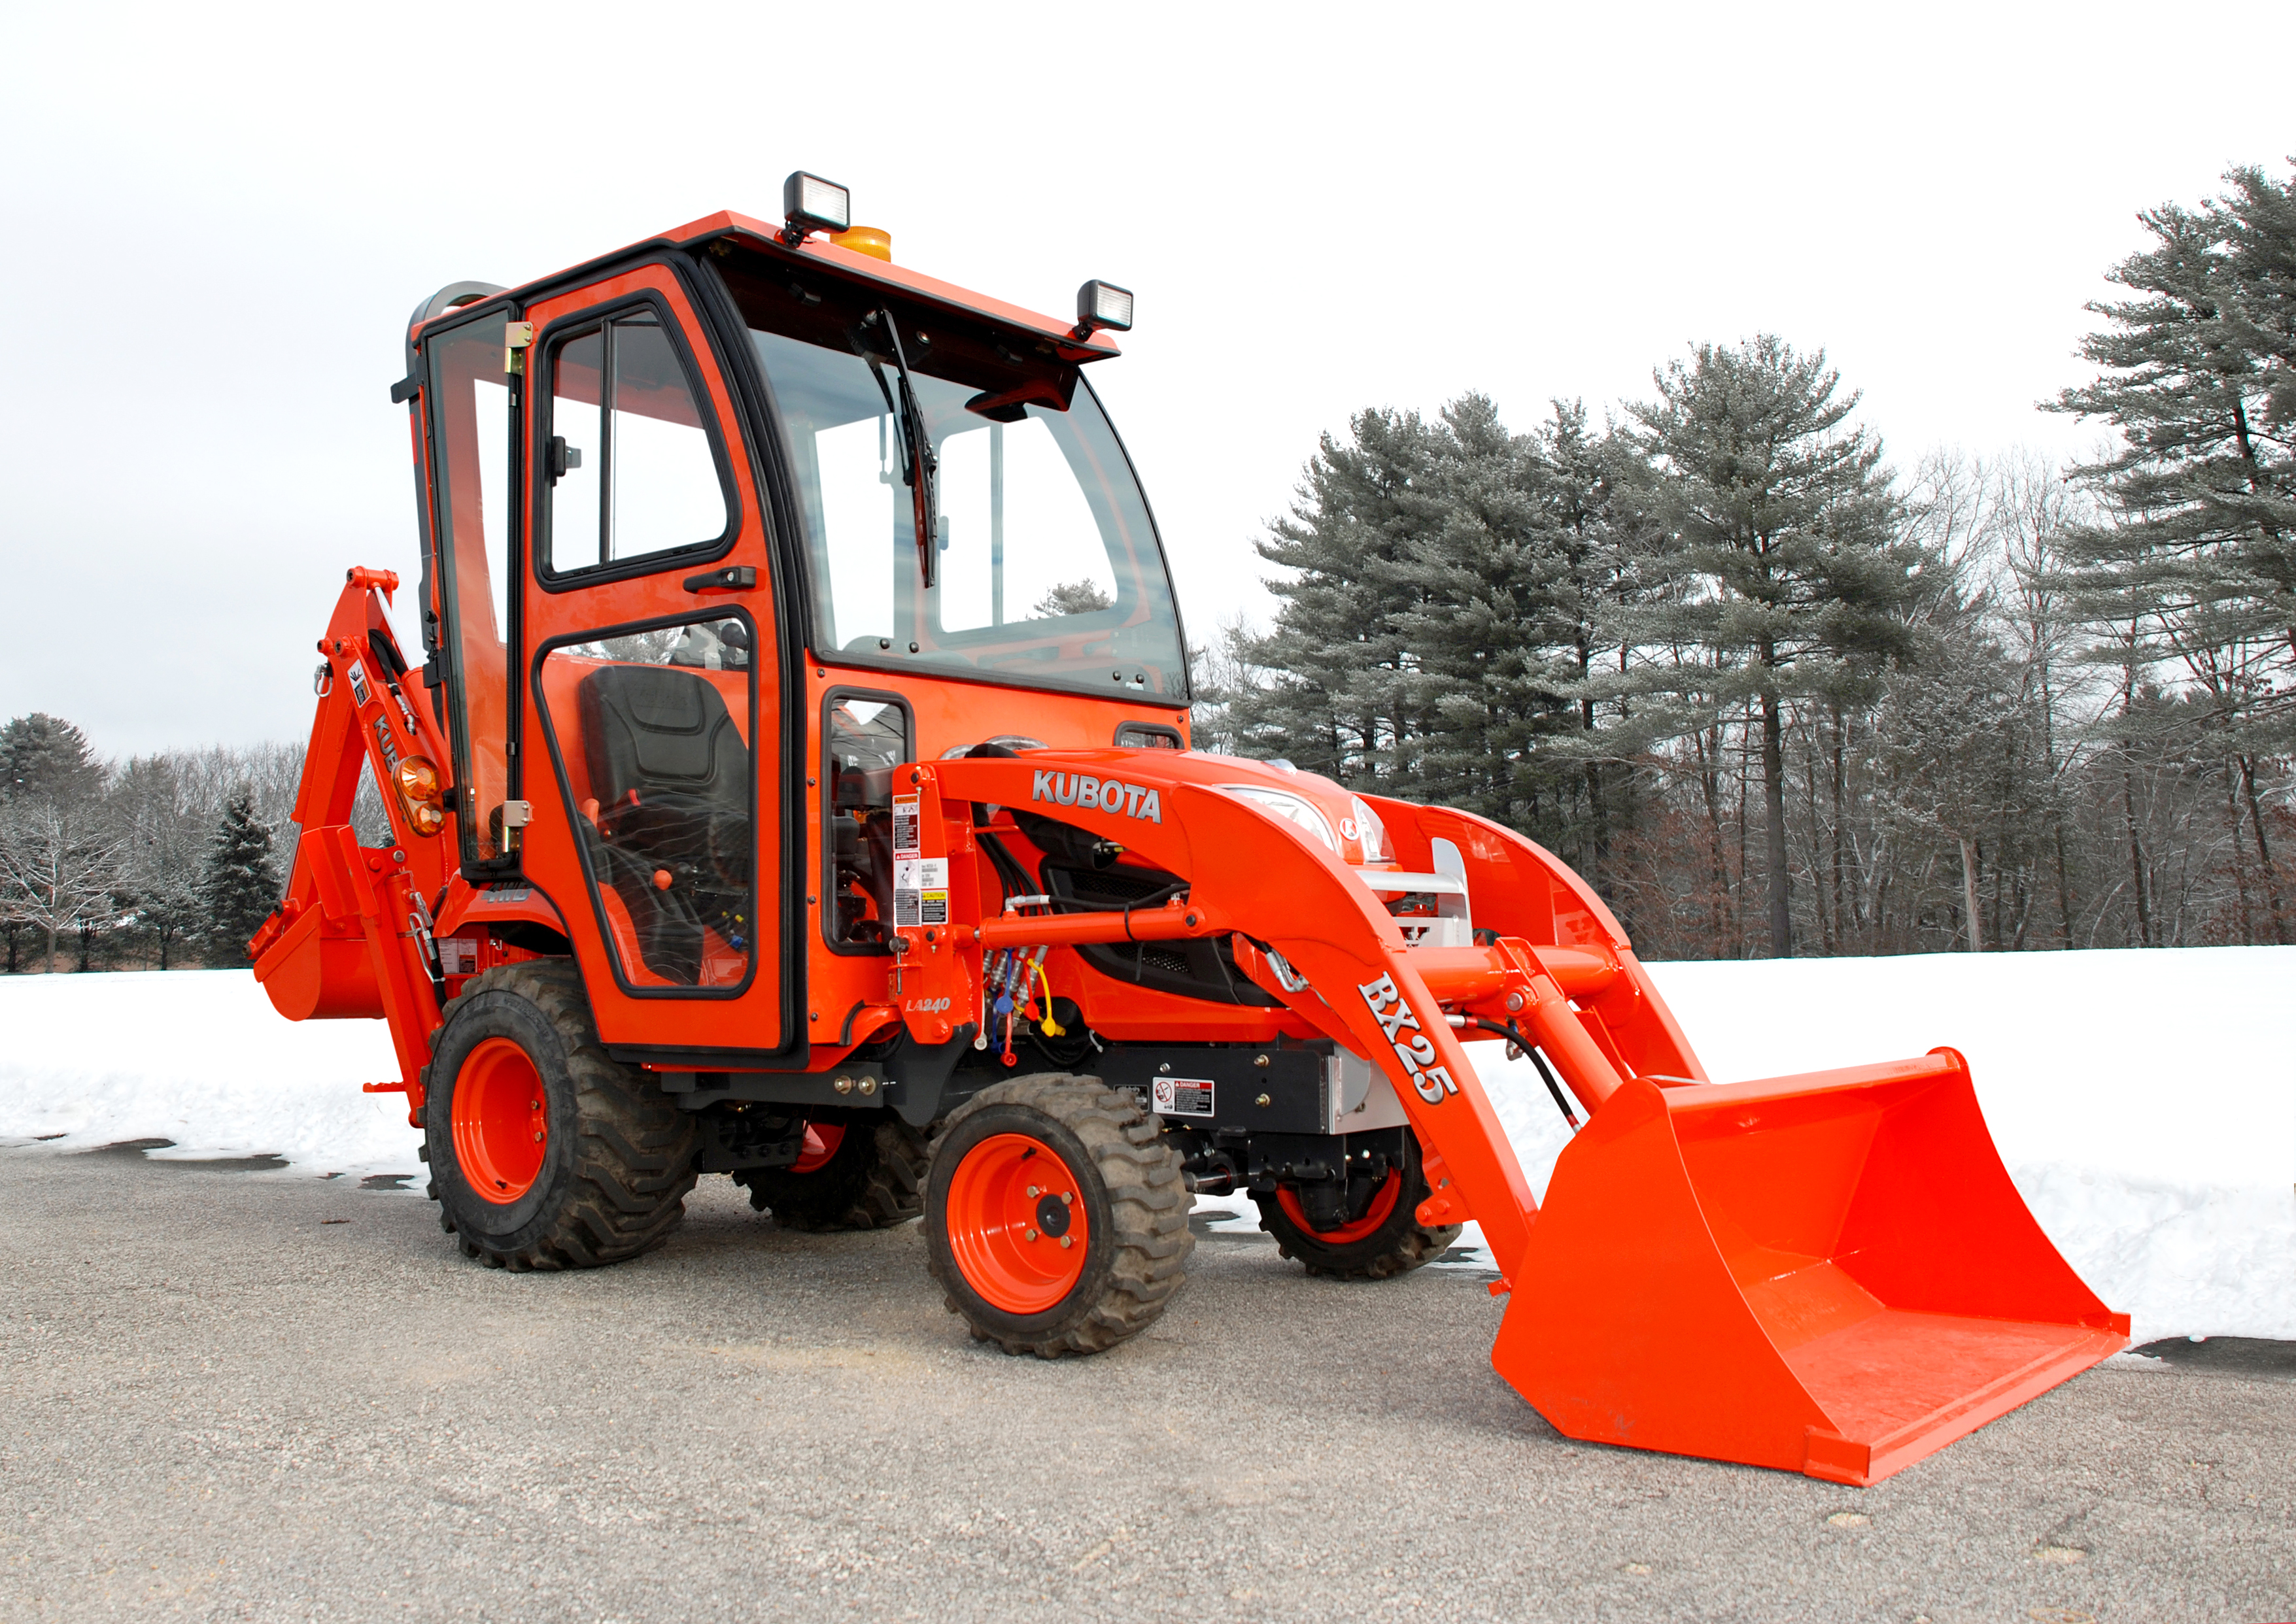 Curtis Hard Side Deluxe Cab For Kubota Bx25 Series Compact